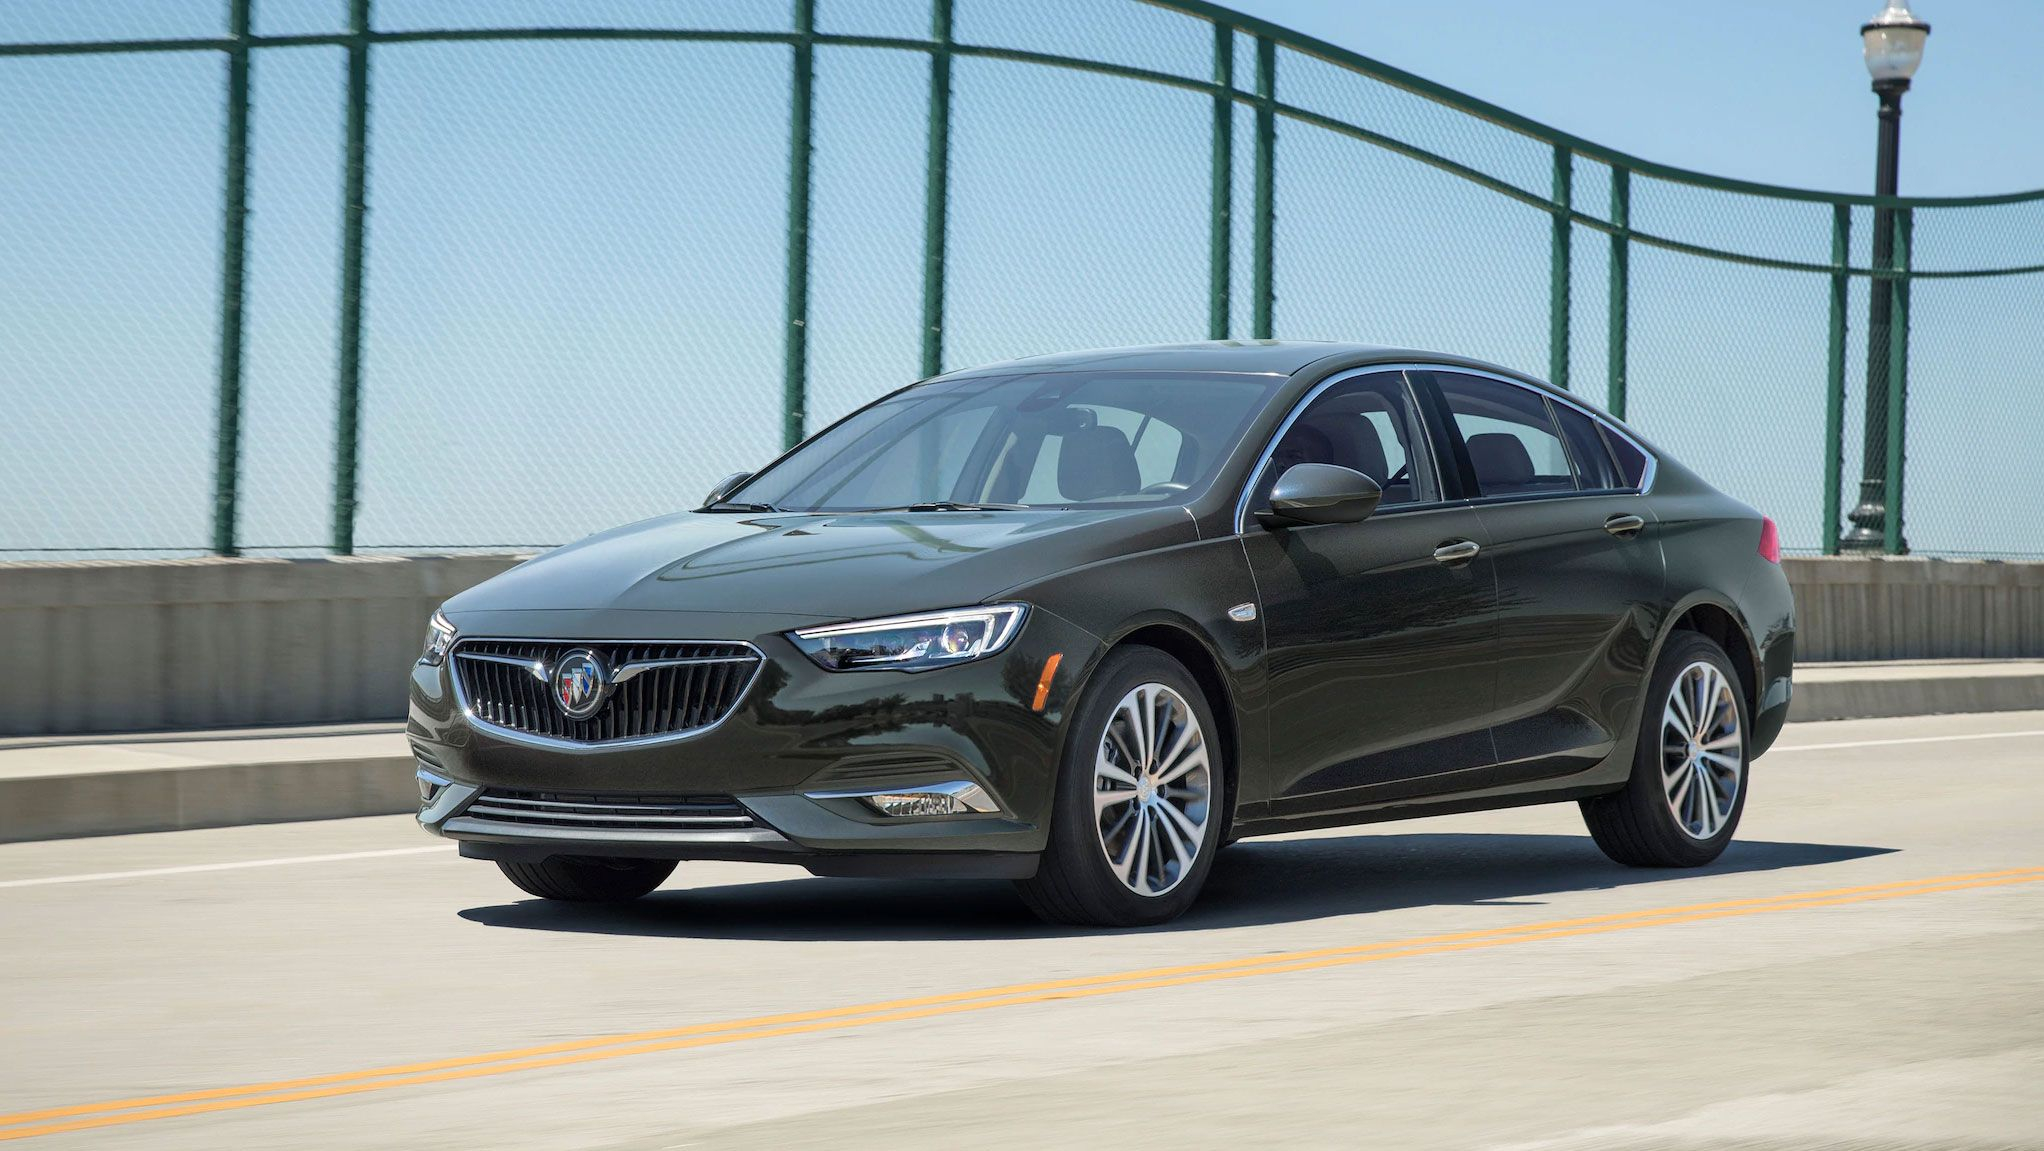 2020 Buick Regal Sportback Review, Pricing, And Specs 2021 Buick Regal Sportback Specs, Used, 0-60